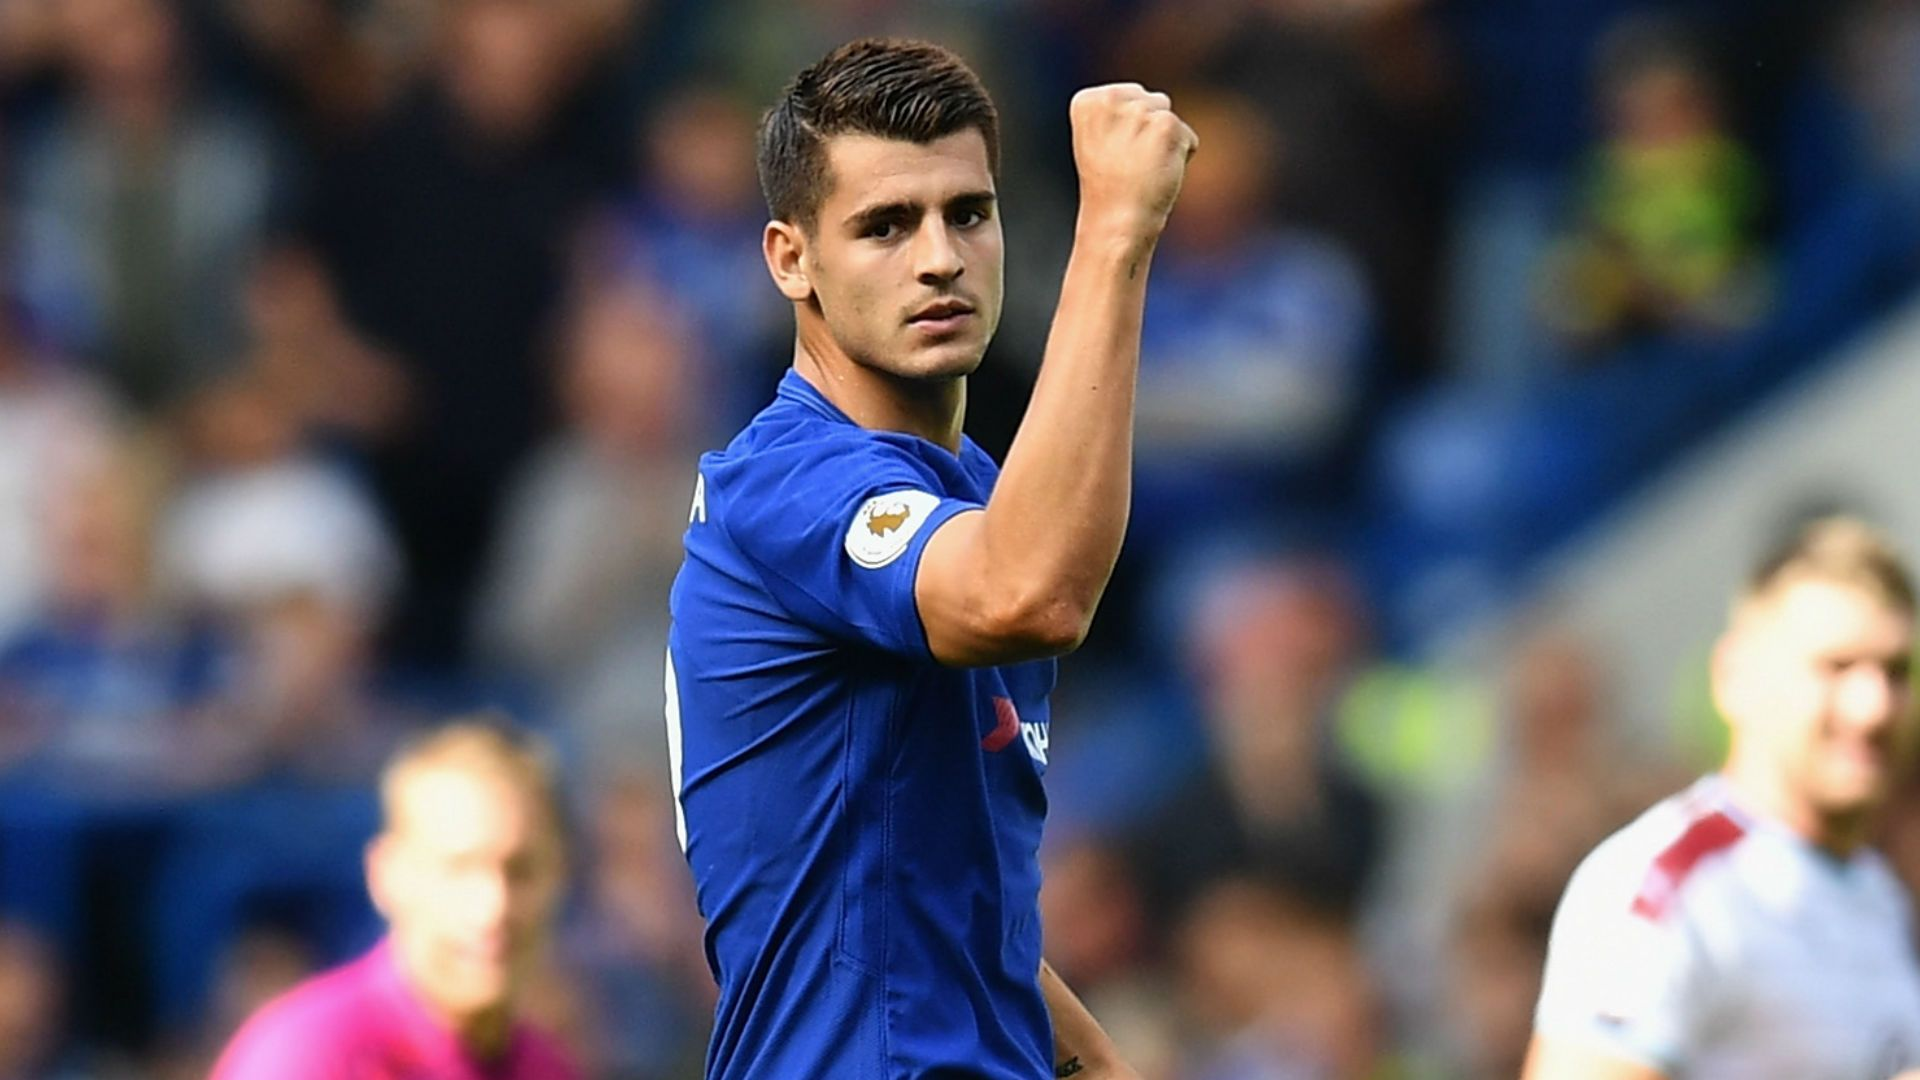 Morata wants to 'make an explosion' with Chelsea | EPL News ...